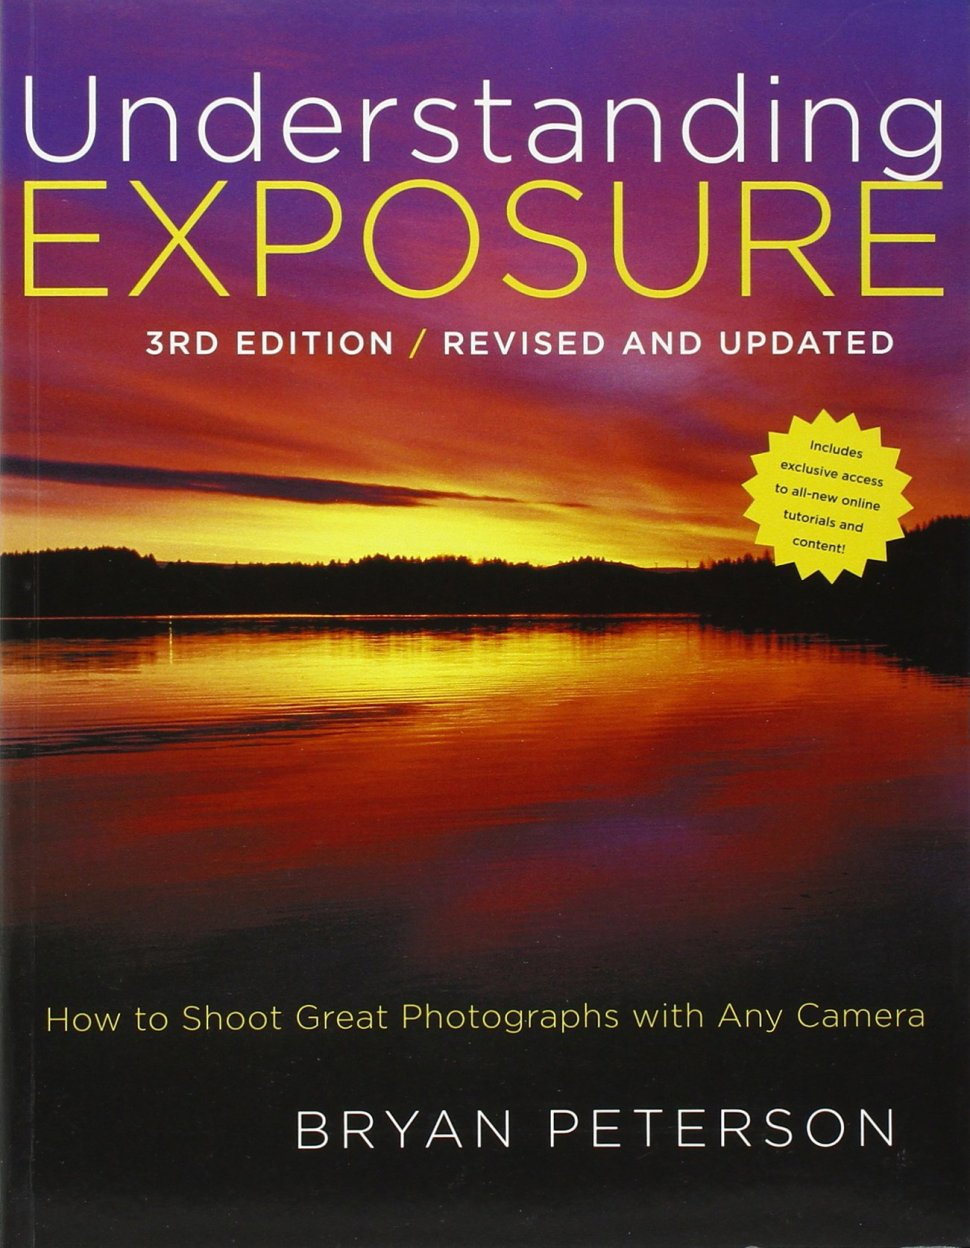 Photography Books We Love 39 Understanding Exposure 39 Third Edition